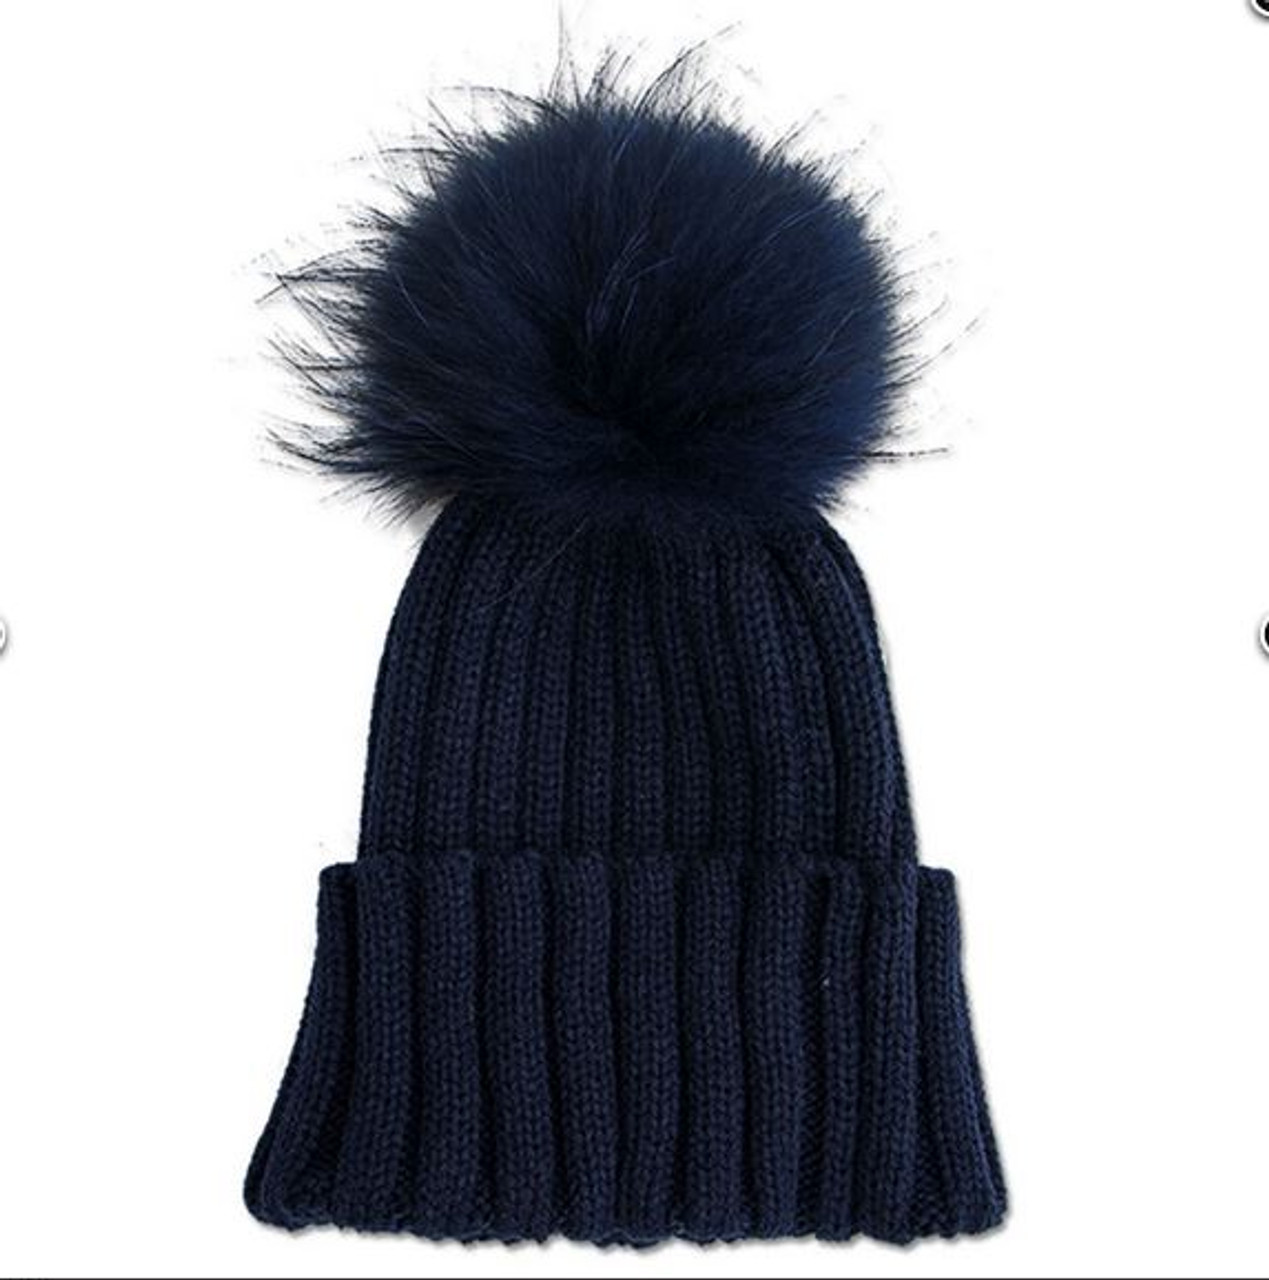 902bb59c28f Black hat with Real Fur Bobble AB-01 - City Cows